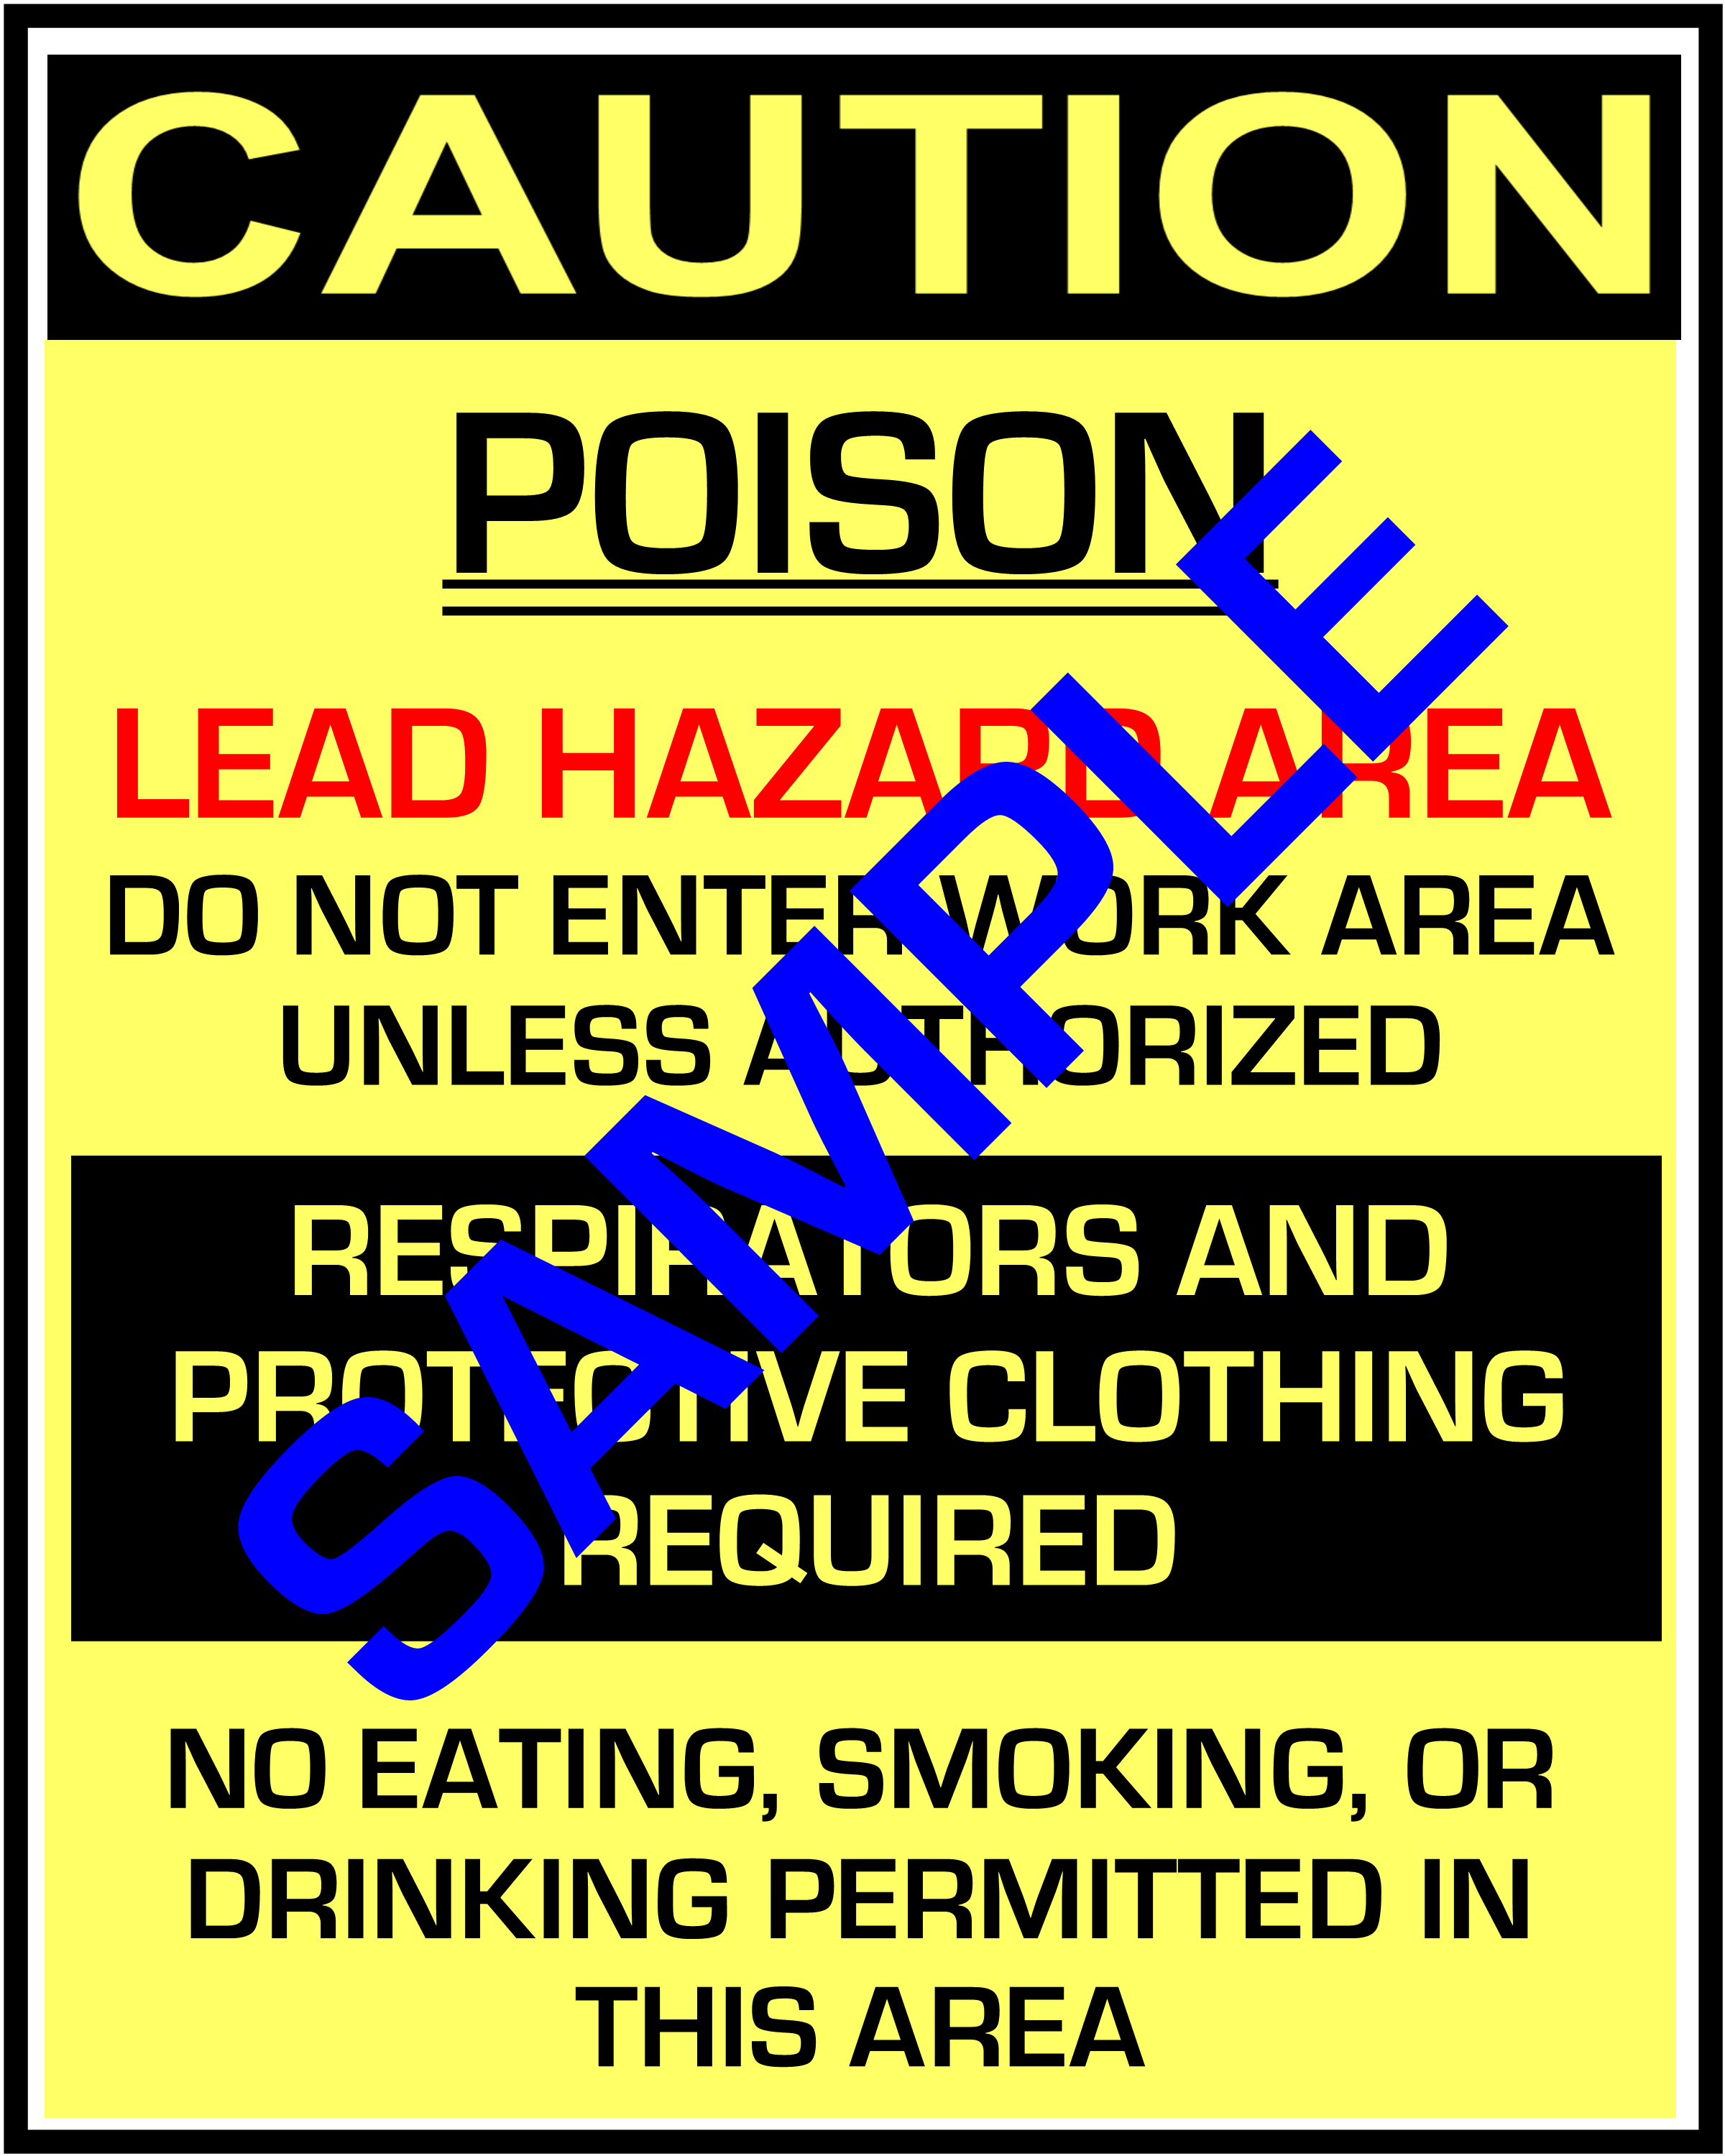 caution-poison-lead-hazard-area-english-sample.png